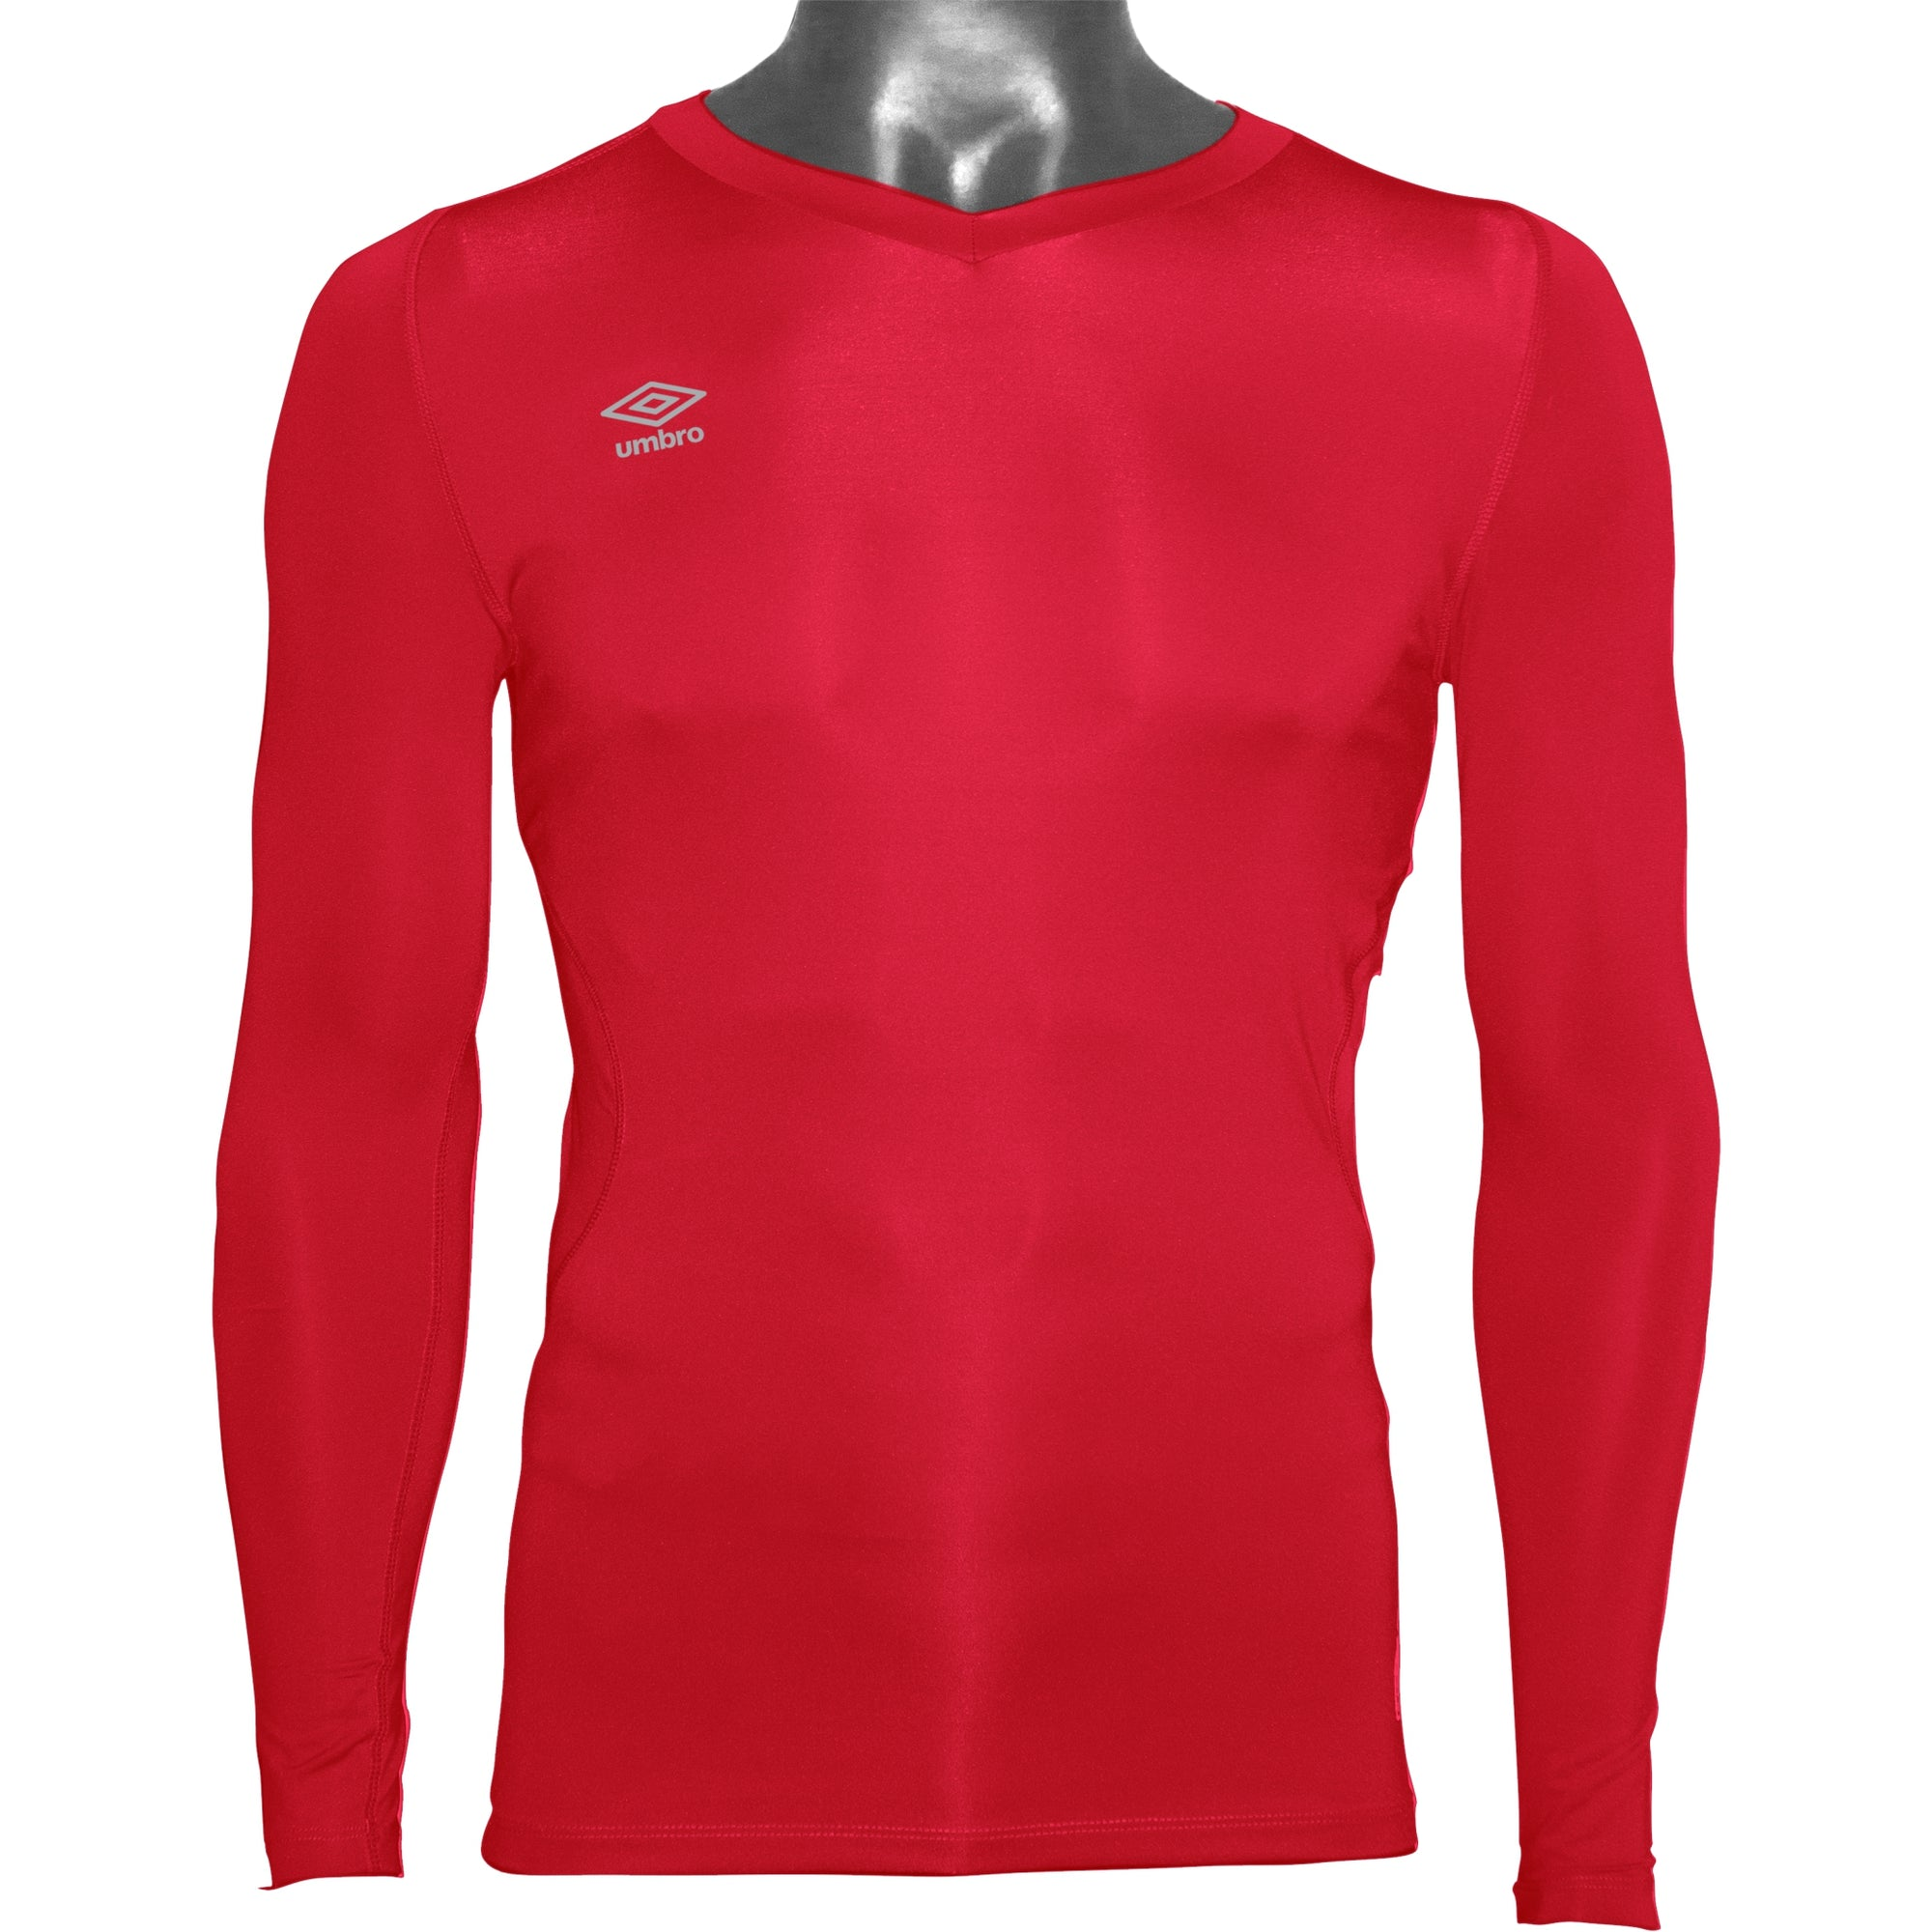 Umbro Elite V Neck baselayer in vermillion (red) with reflective stacked diamond logo on right chest